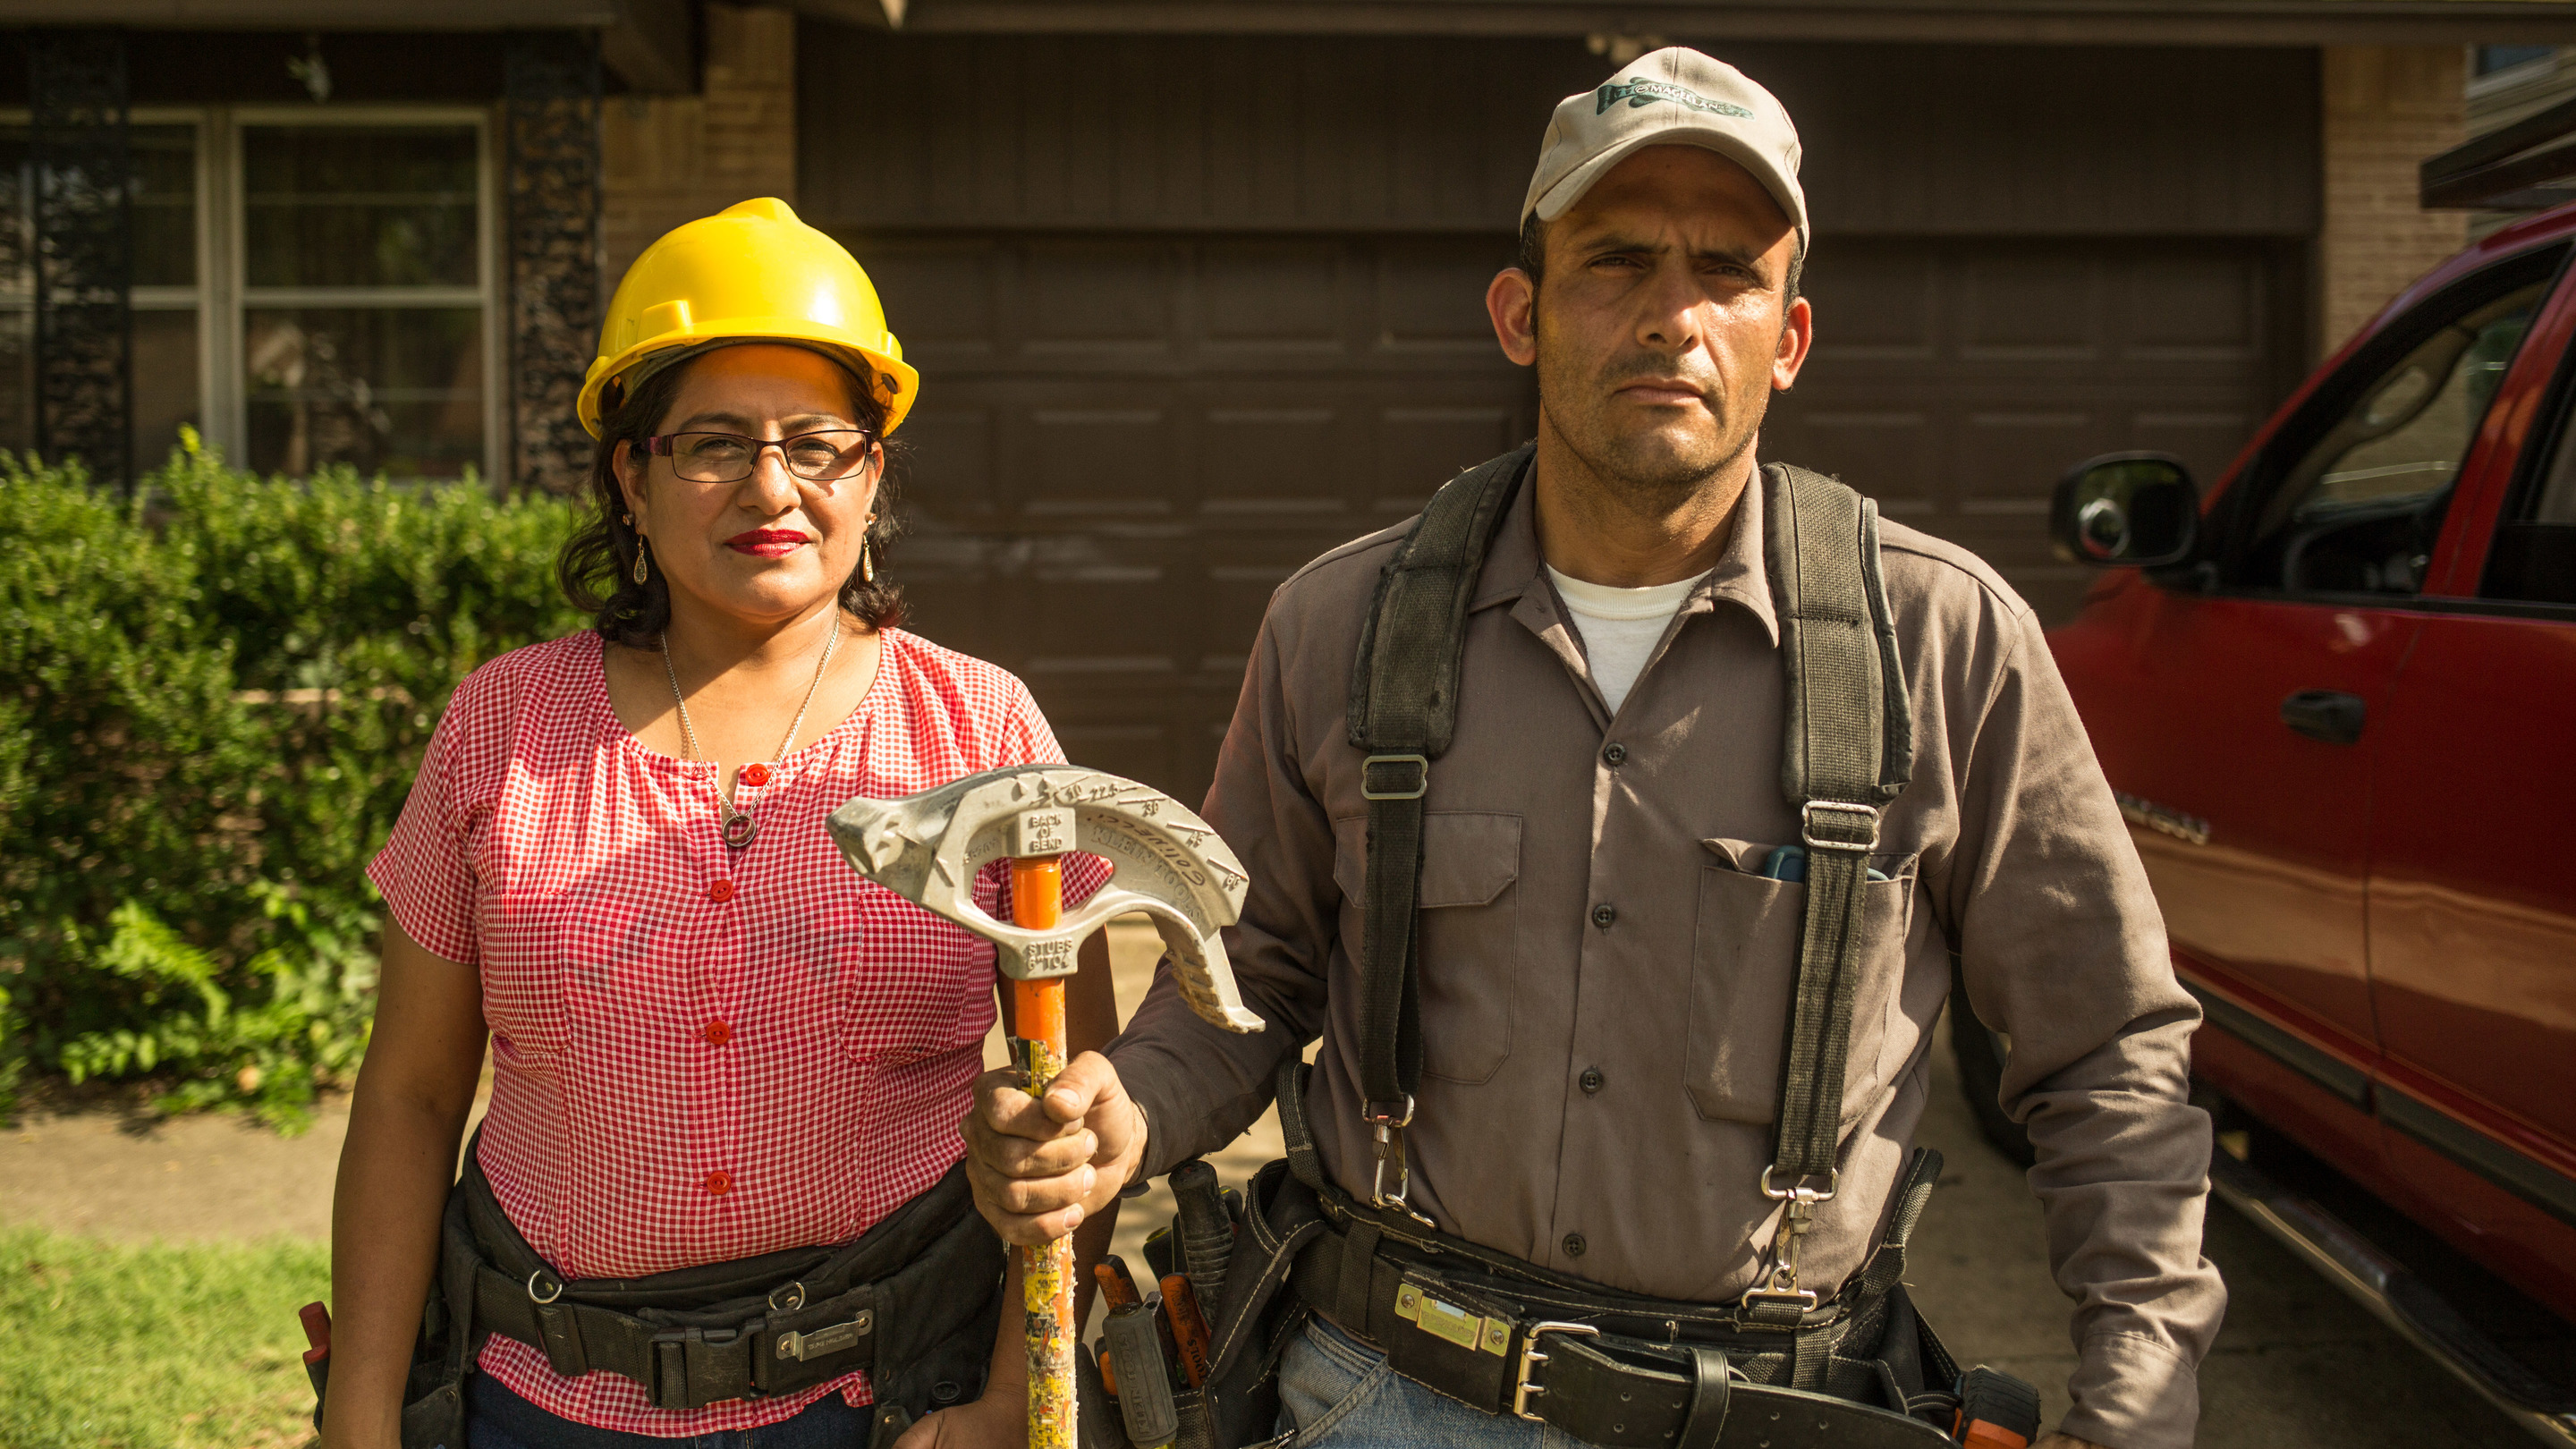 Person in hard hat next to person holding construction tool